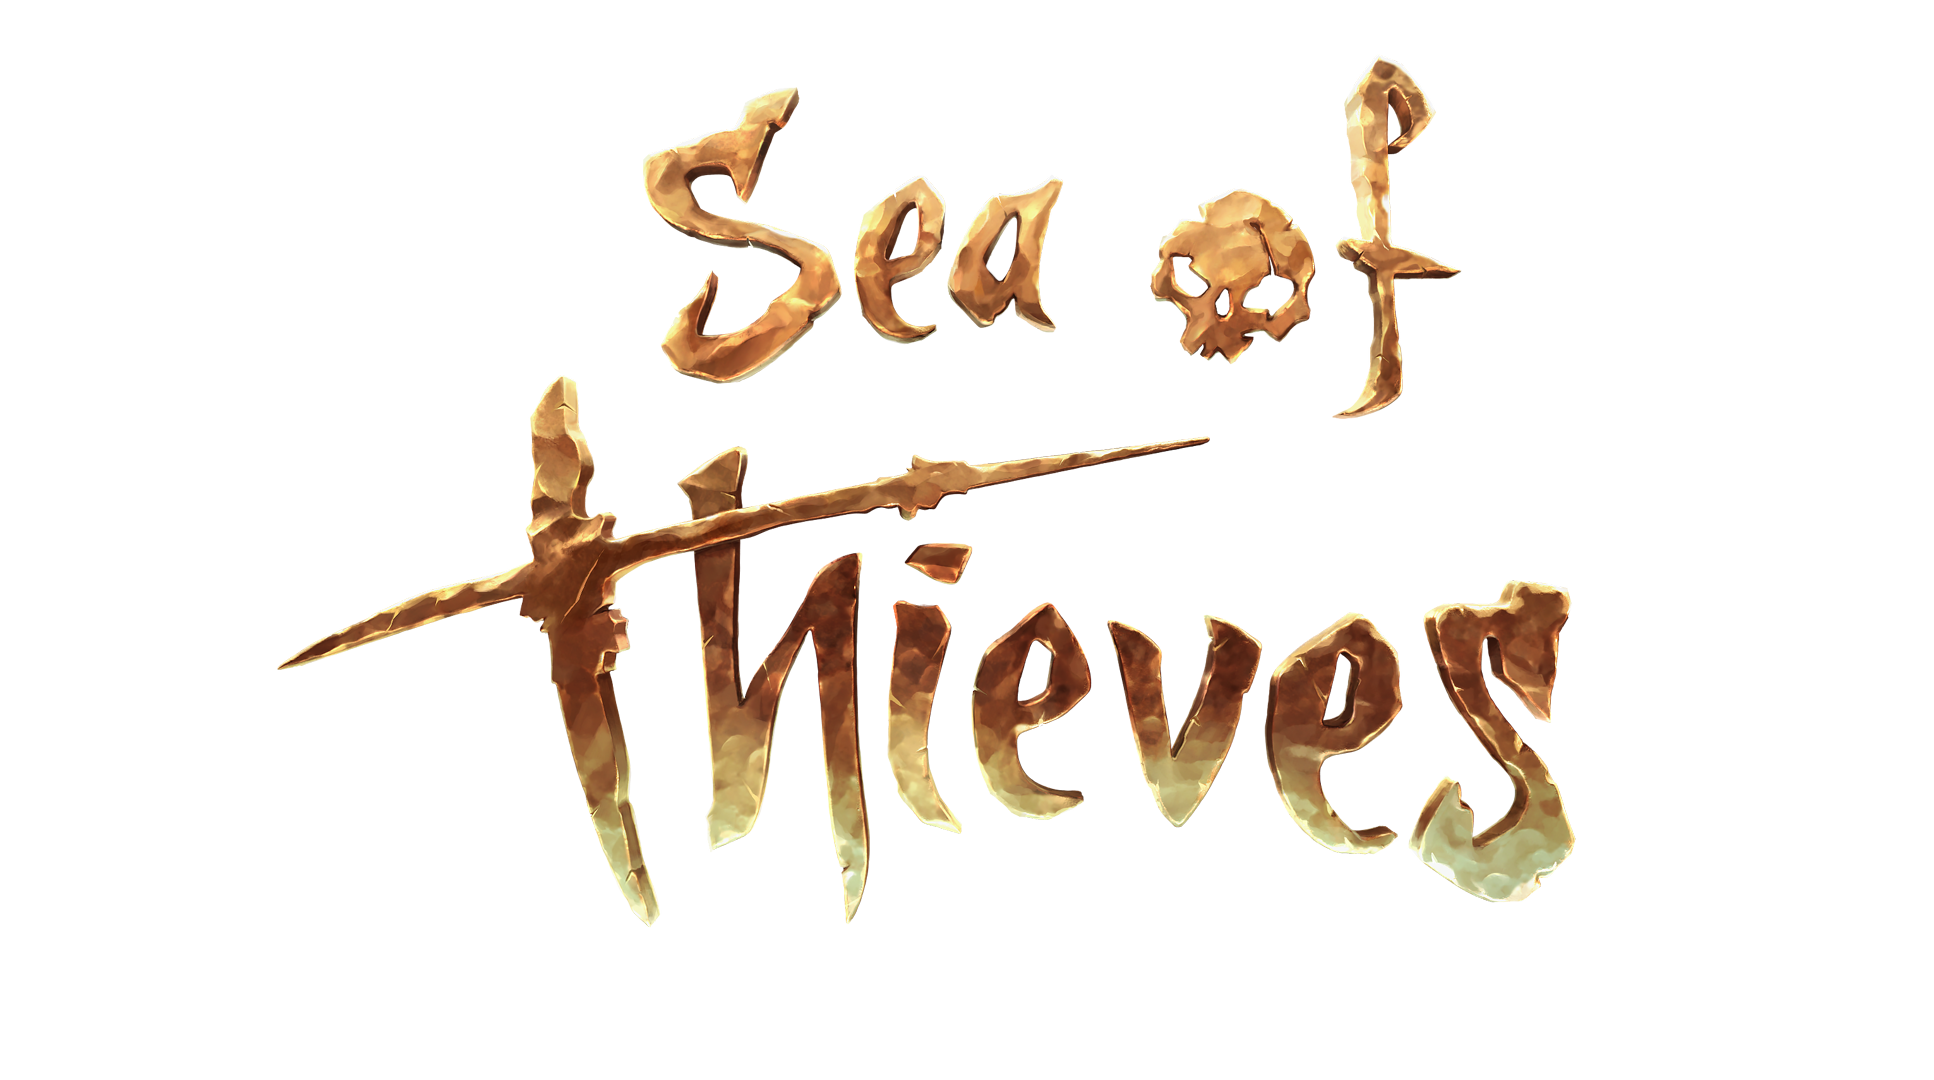 sea-of-thieves-paintover-b-png